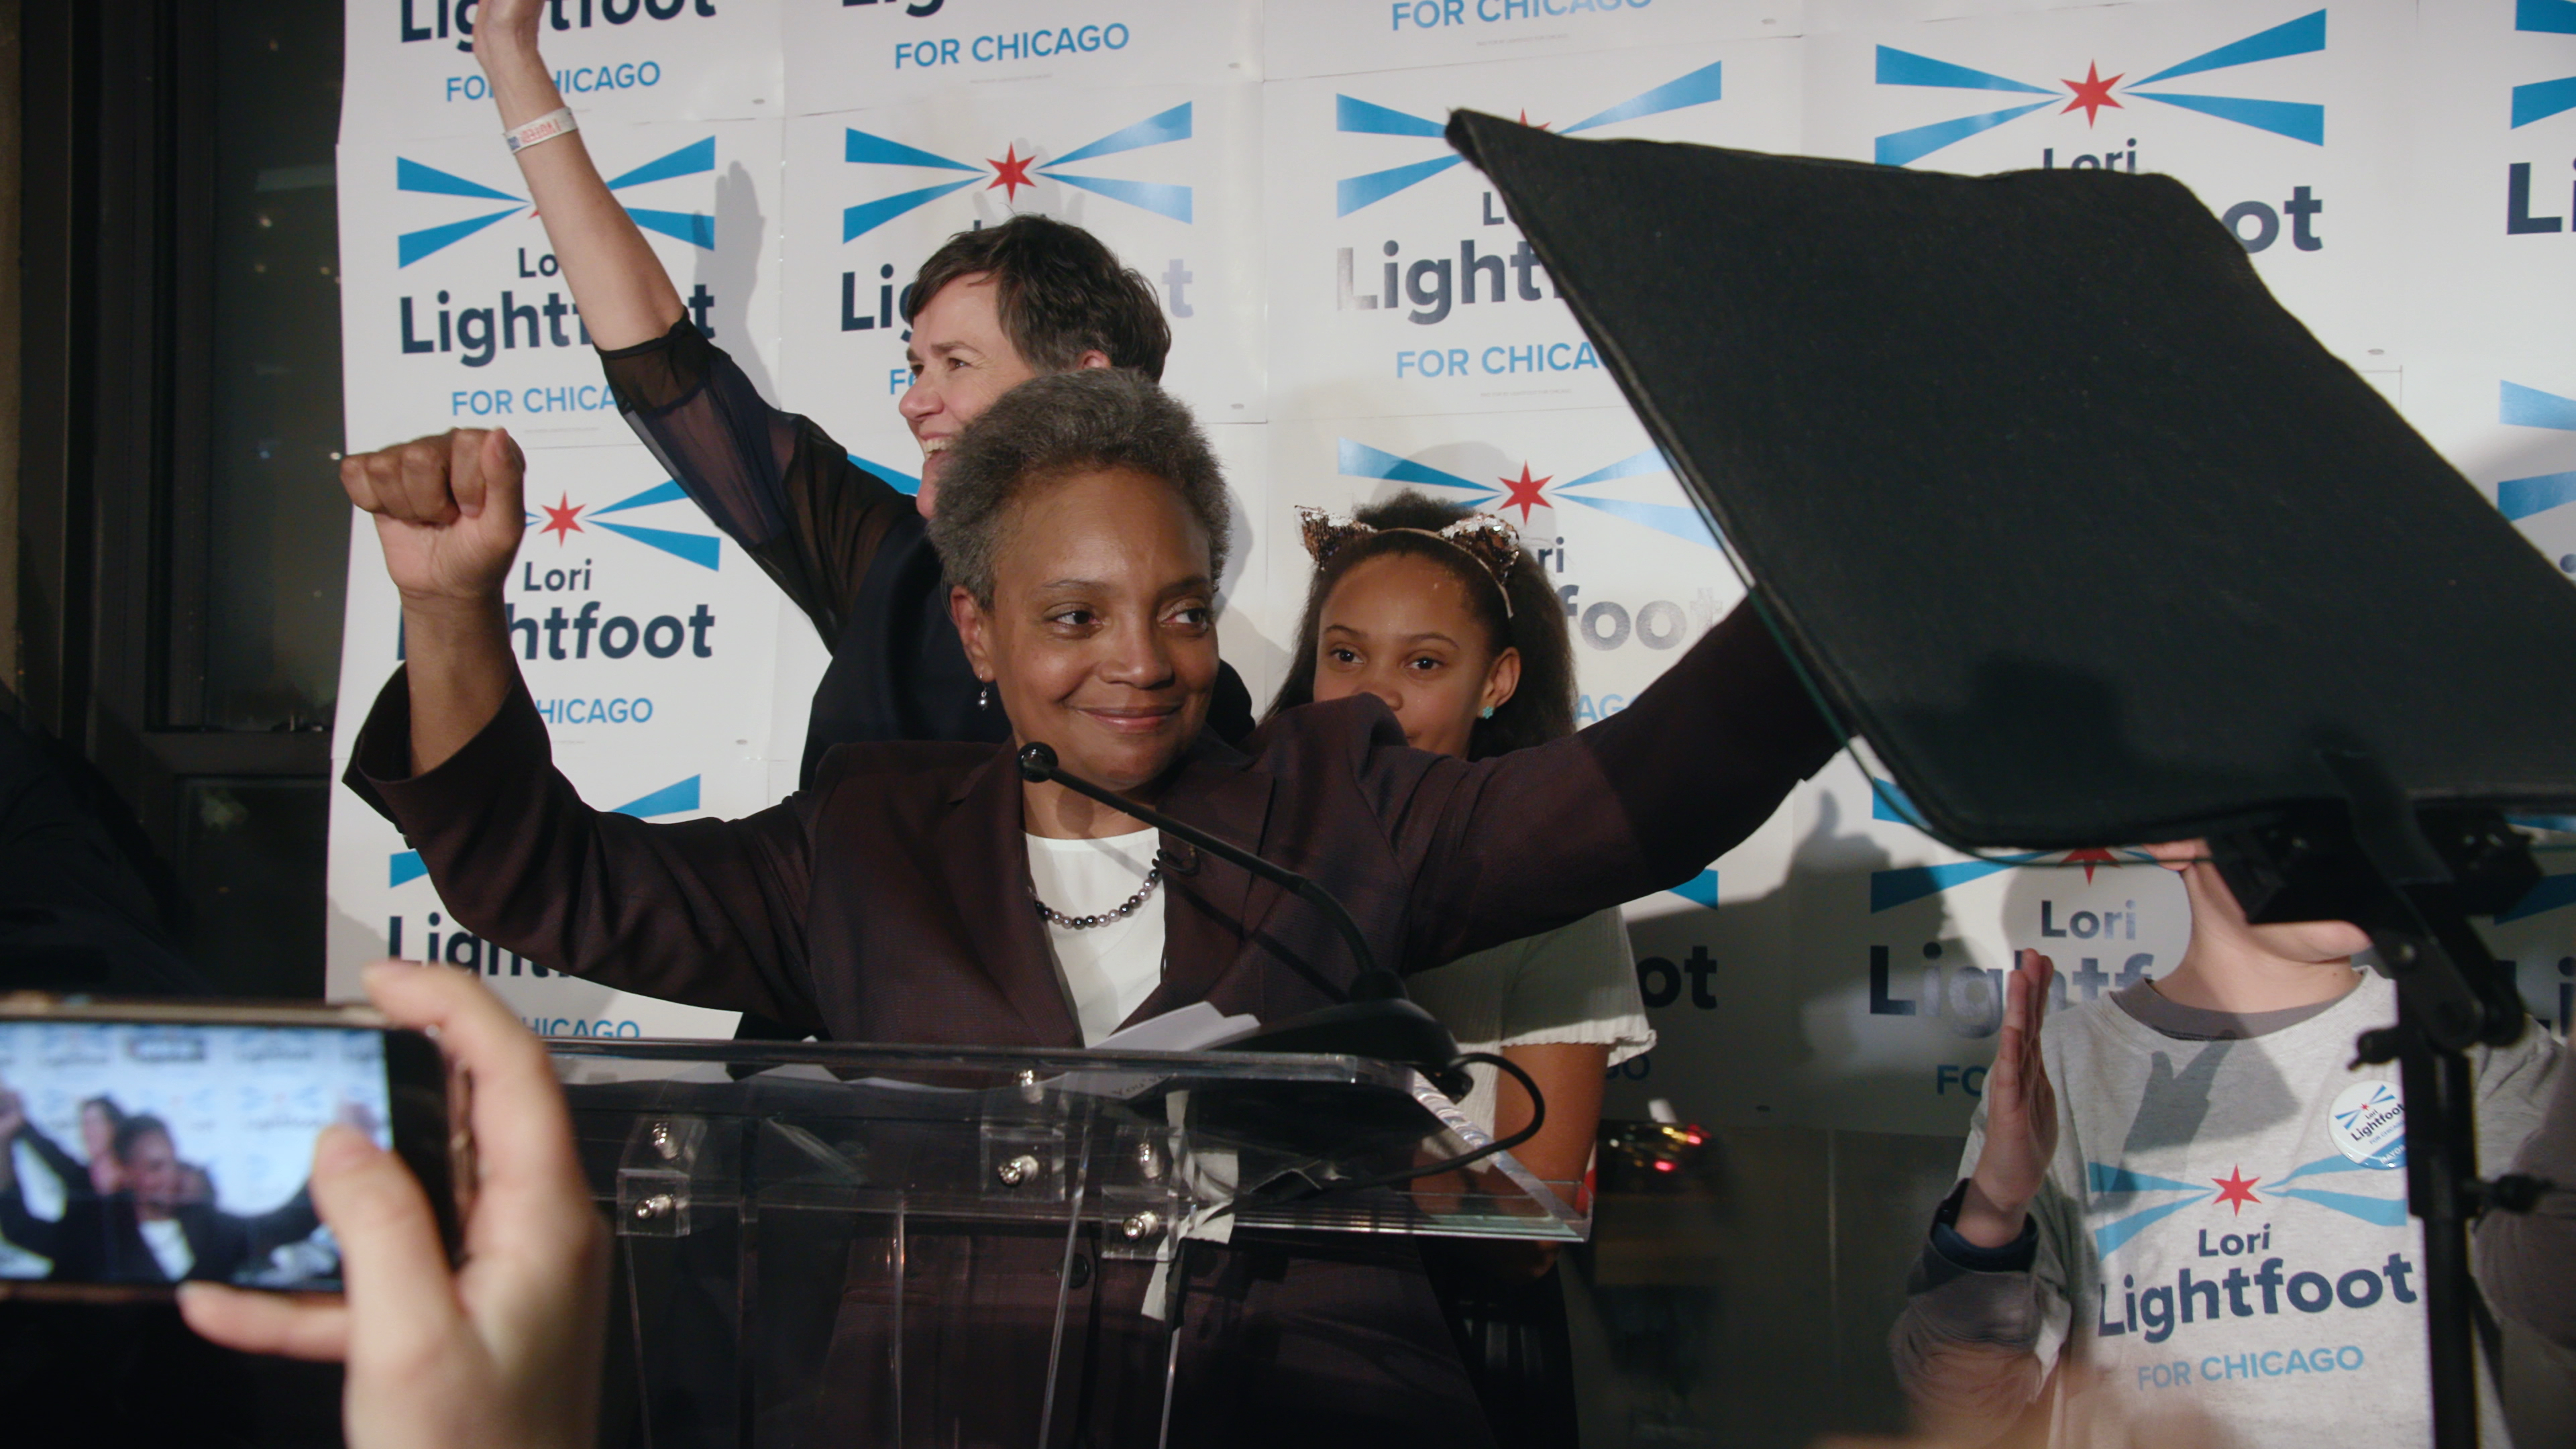 Lori Lightfoot celebrates a preliminary victory as the Chicago Mayoral race comes to a close.